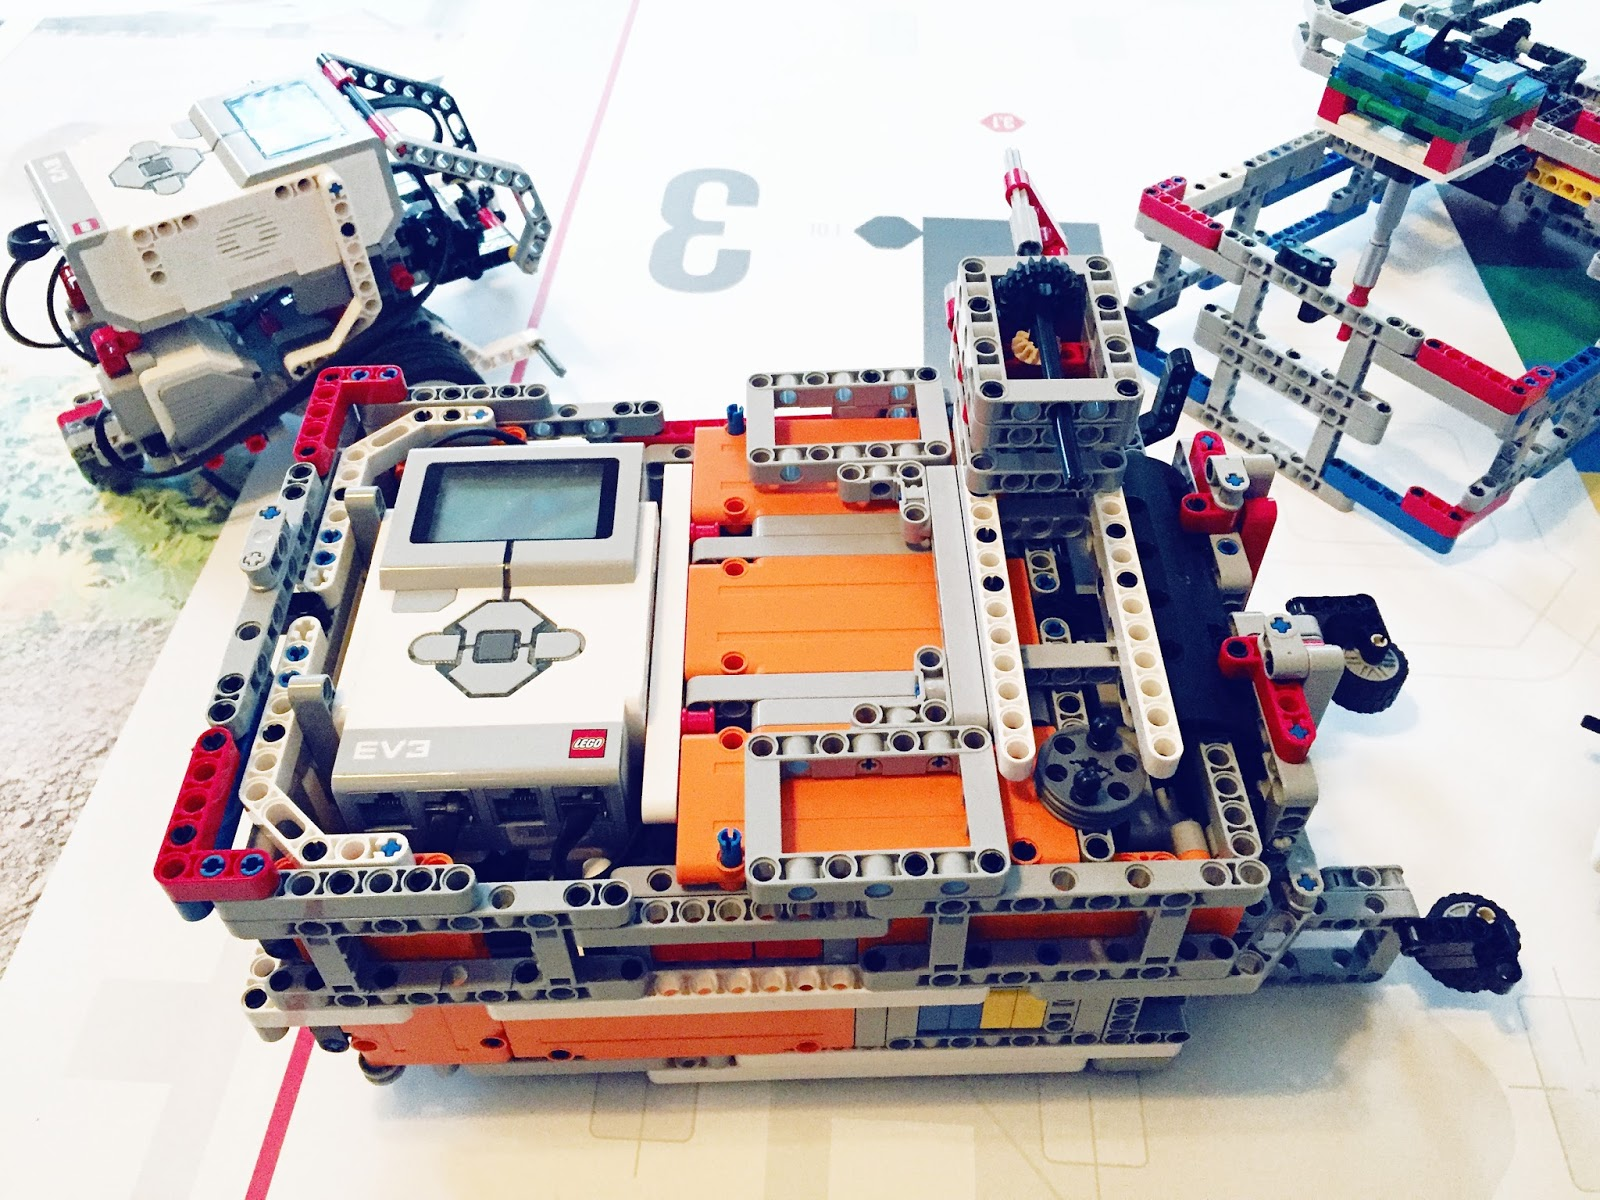 Different EV3 Robot Configurations | Mindstorms | Robotics Summer Camps Dallas